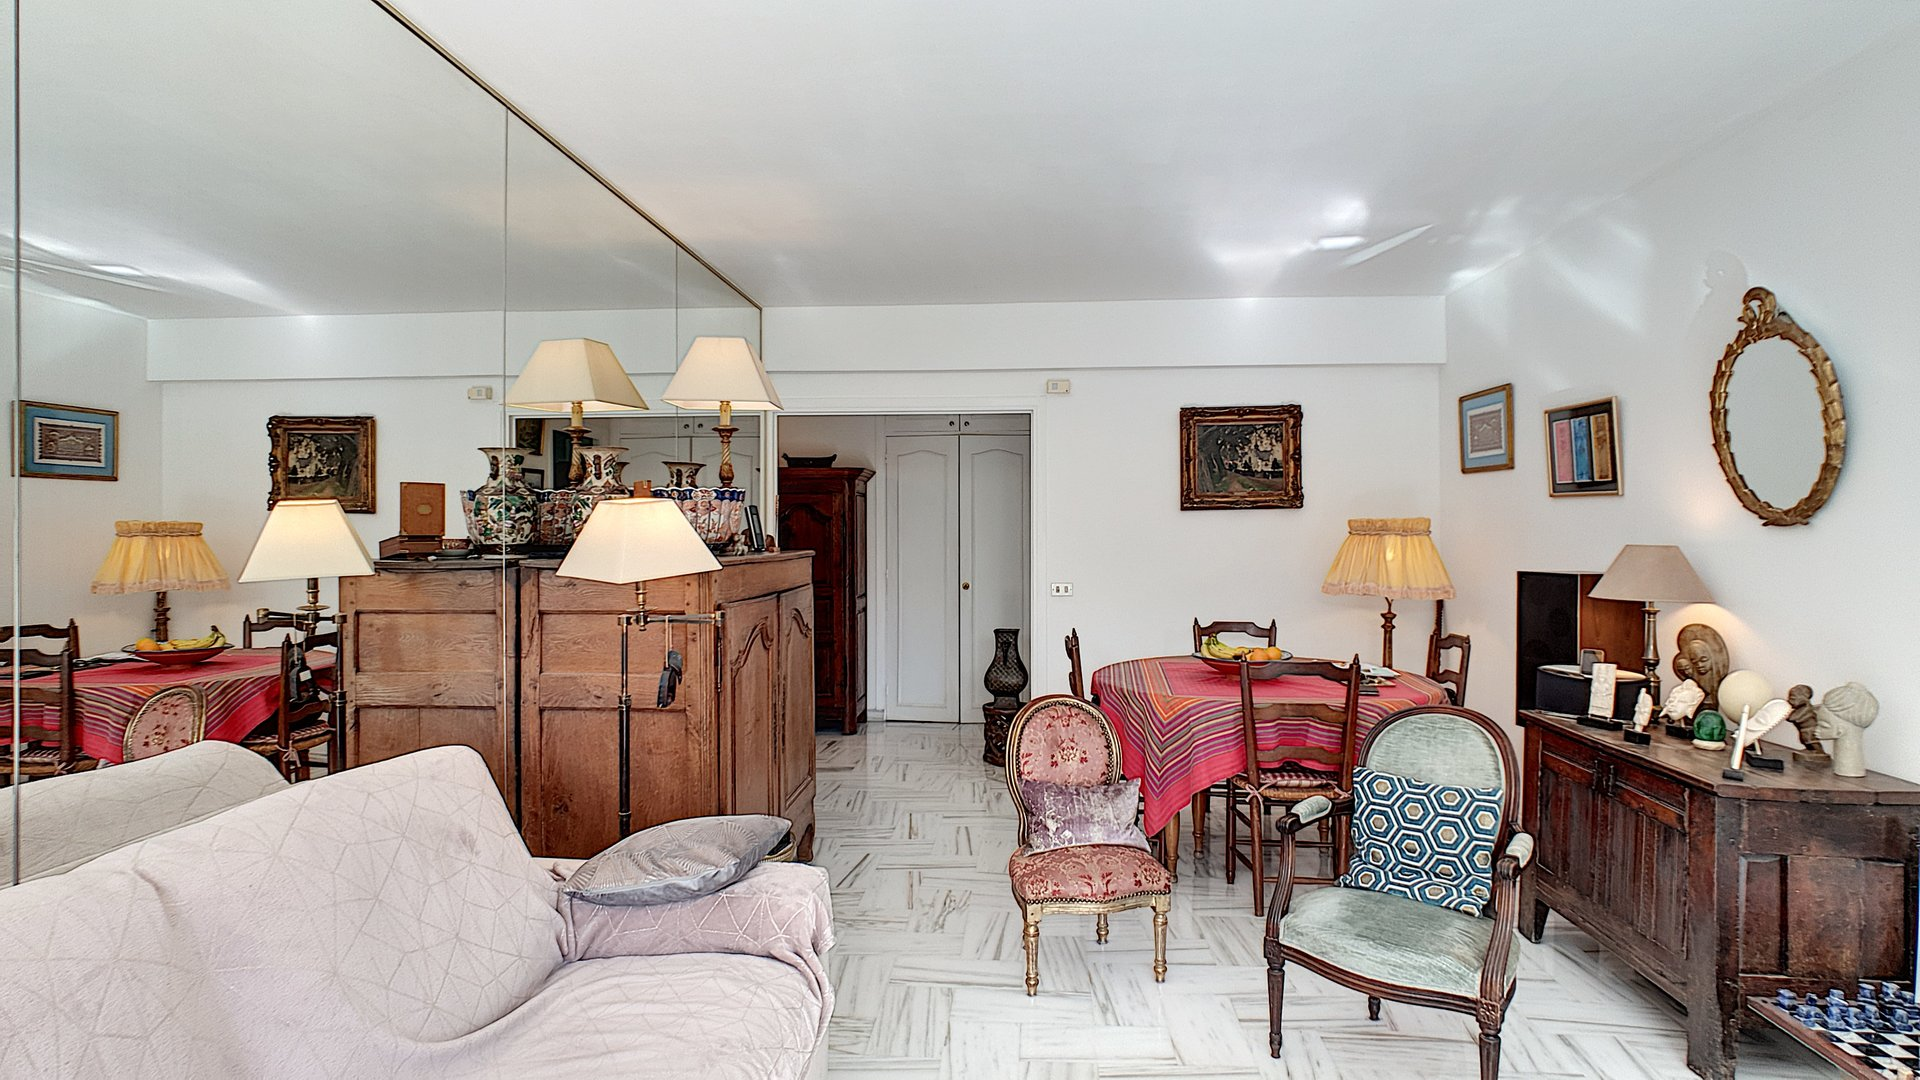 Property for sale in Cannes Montrose